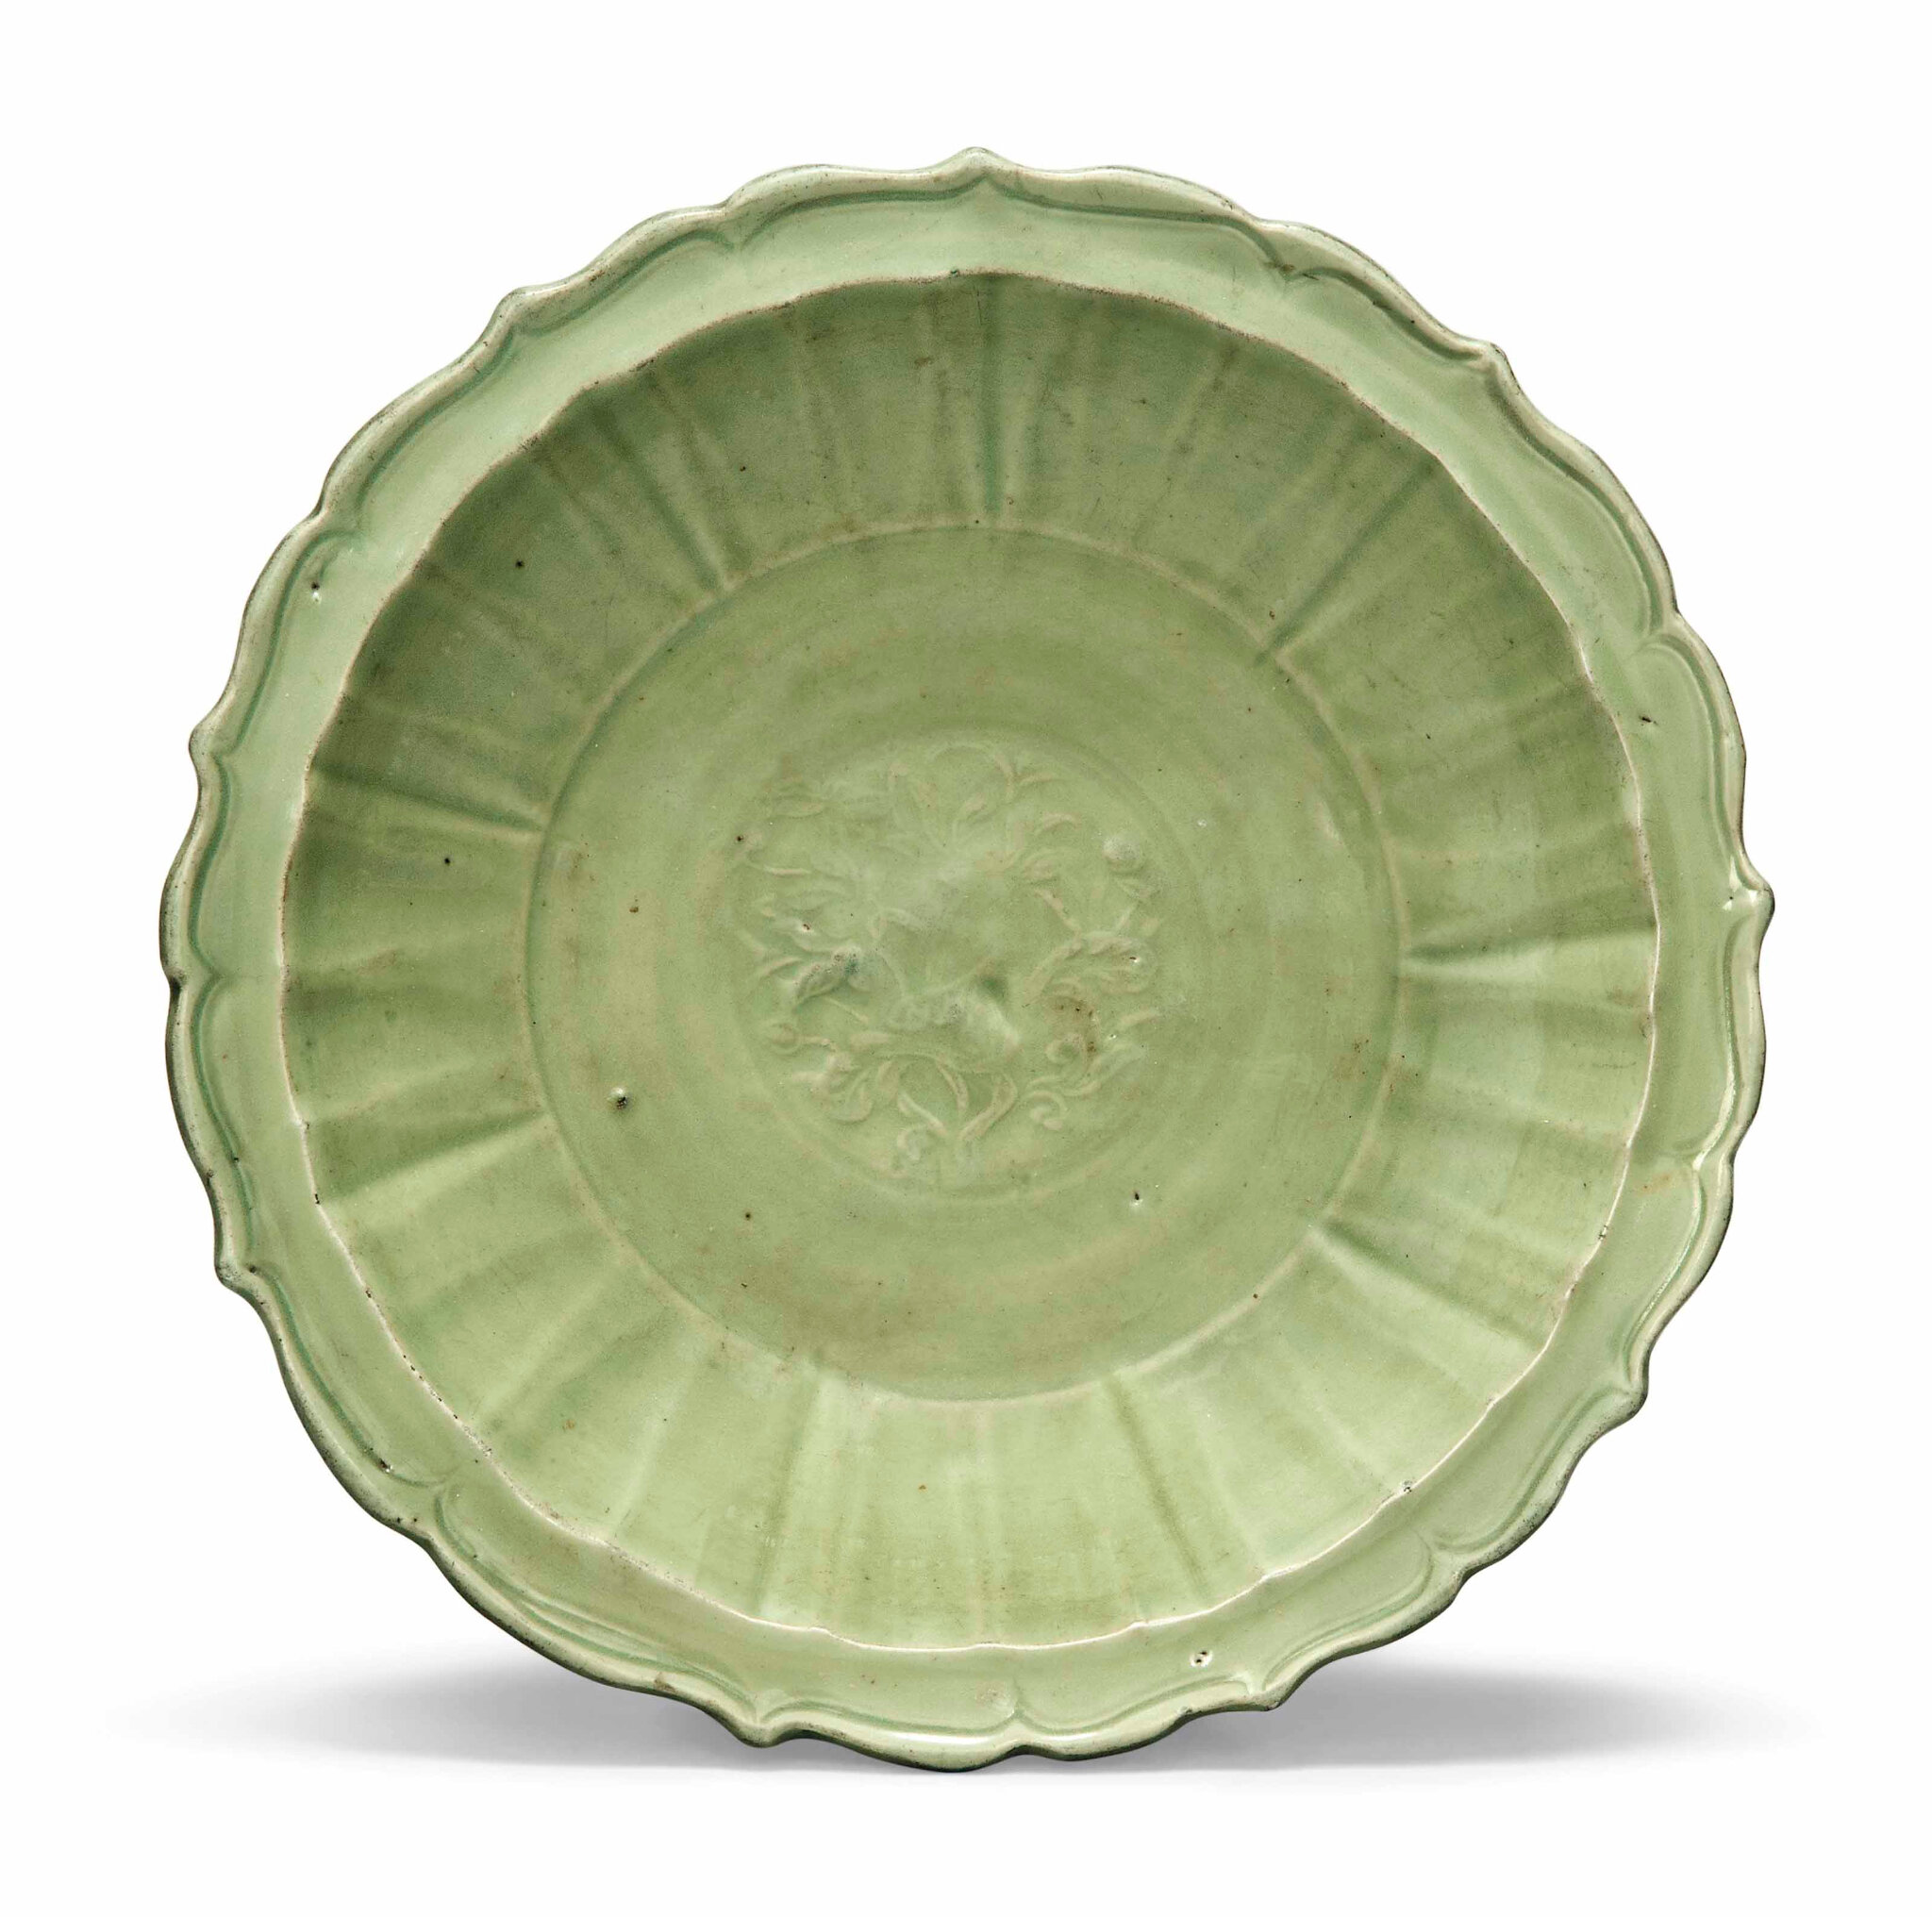 A Longquan celadon-glazed charger, Ming dynasty (1368-1644)